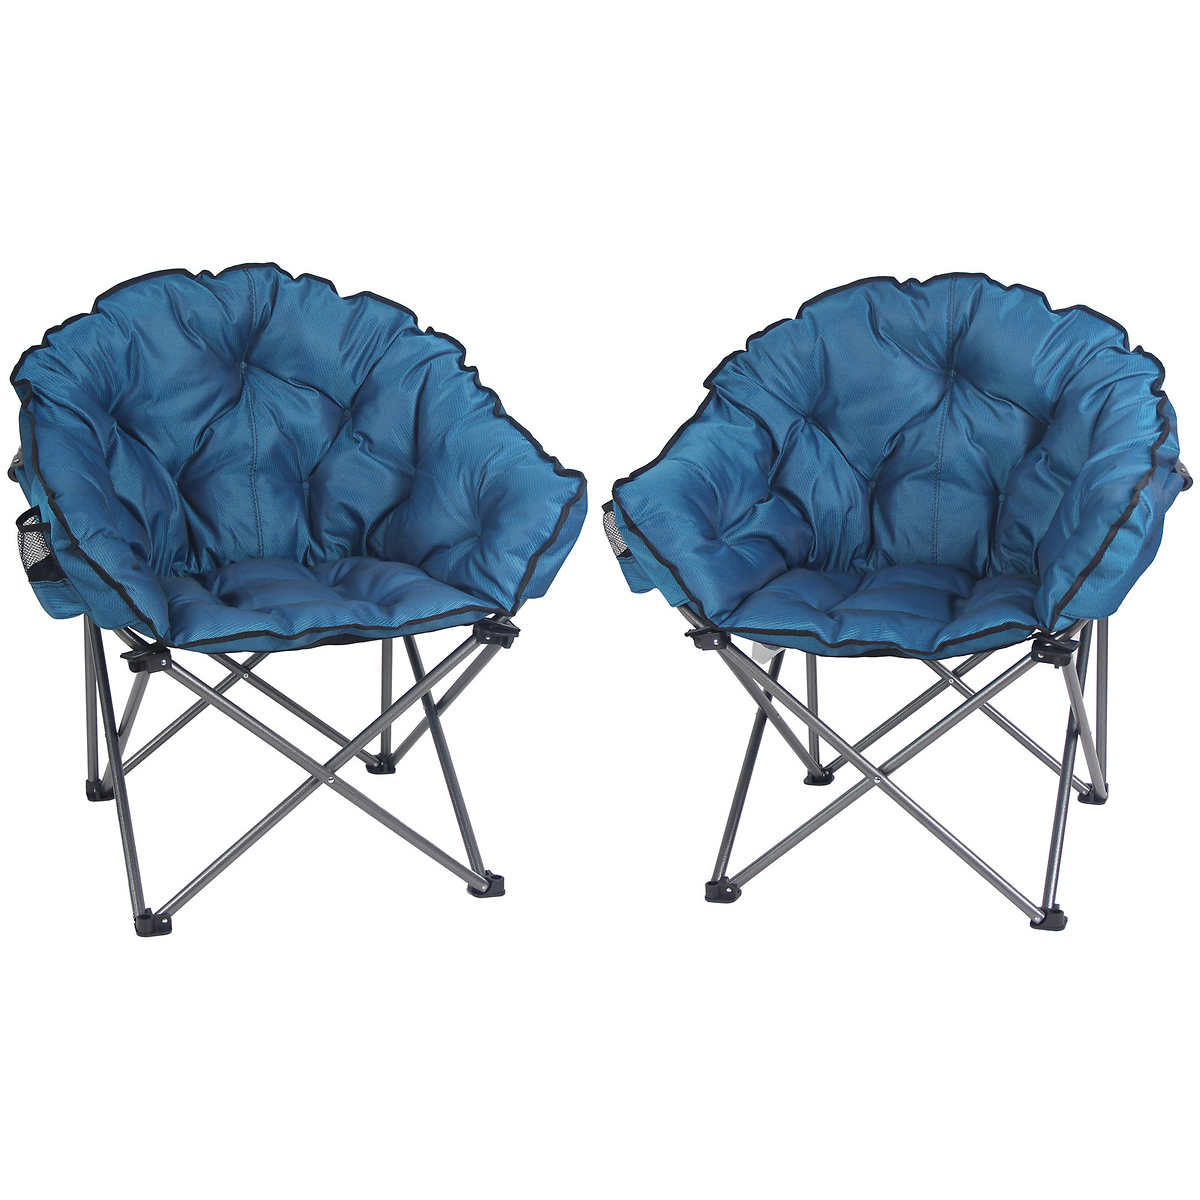 Costco Lawn Chairs | Best Chair Design Ideas